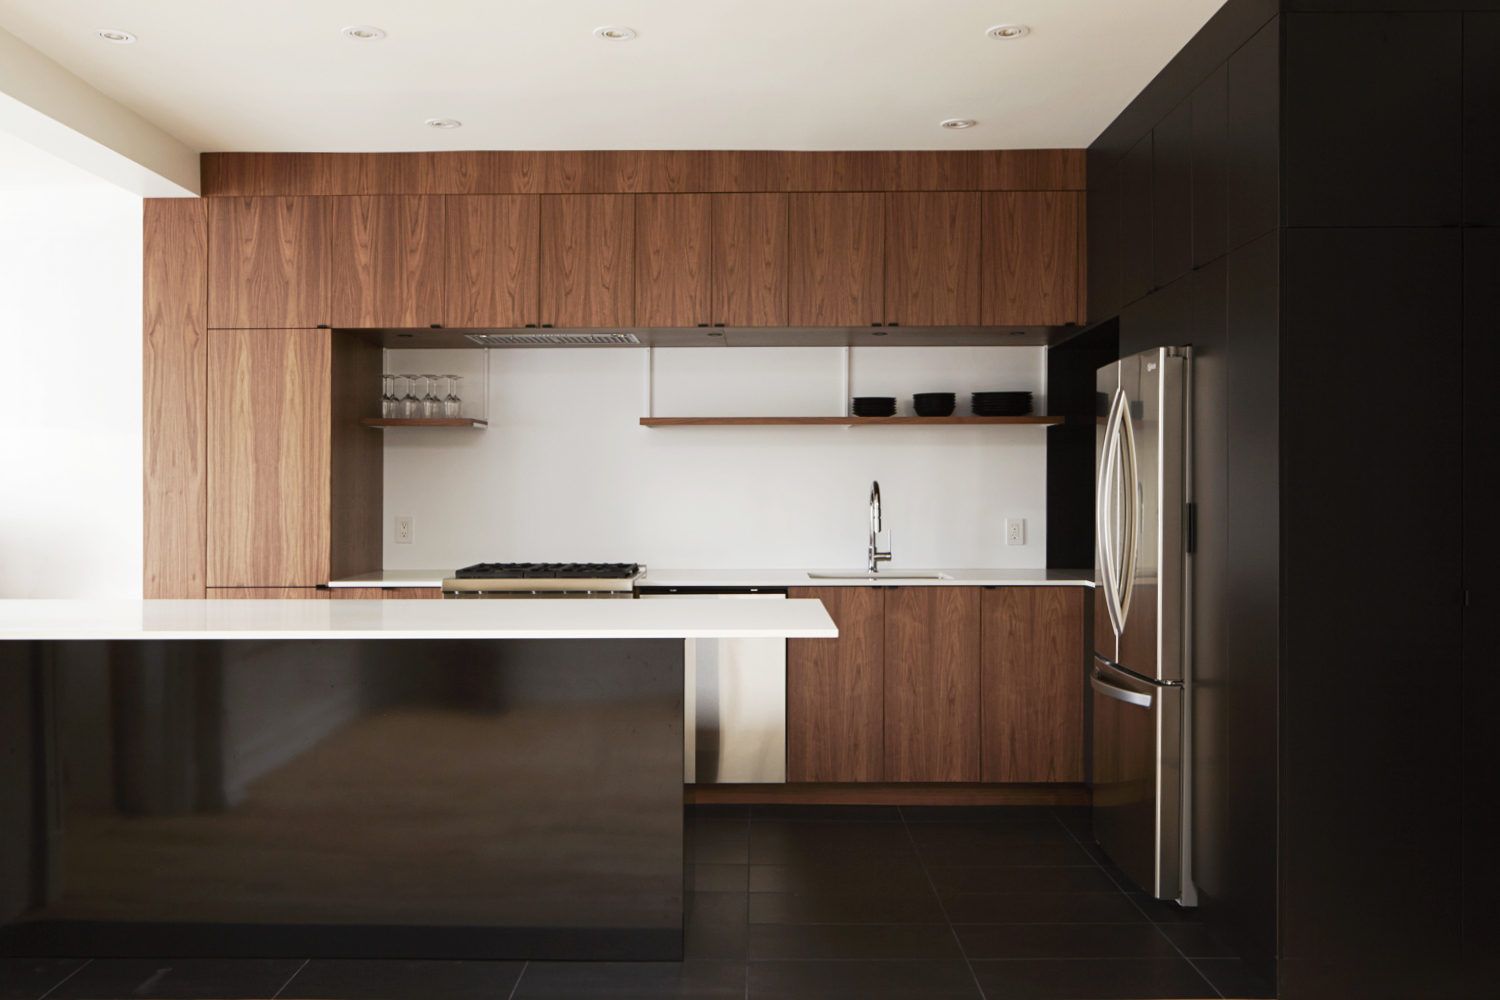 Renovation of a residential kitchen. Pantry and high cabinets black finish. Other section of custom cabinets in black walnut and island covered with steel sheet finished electrostatic paint